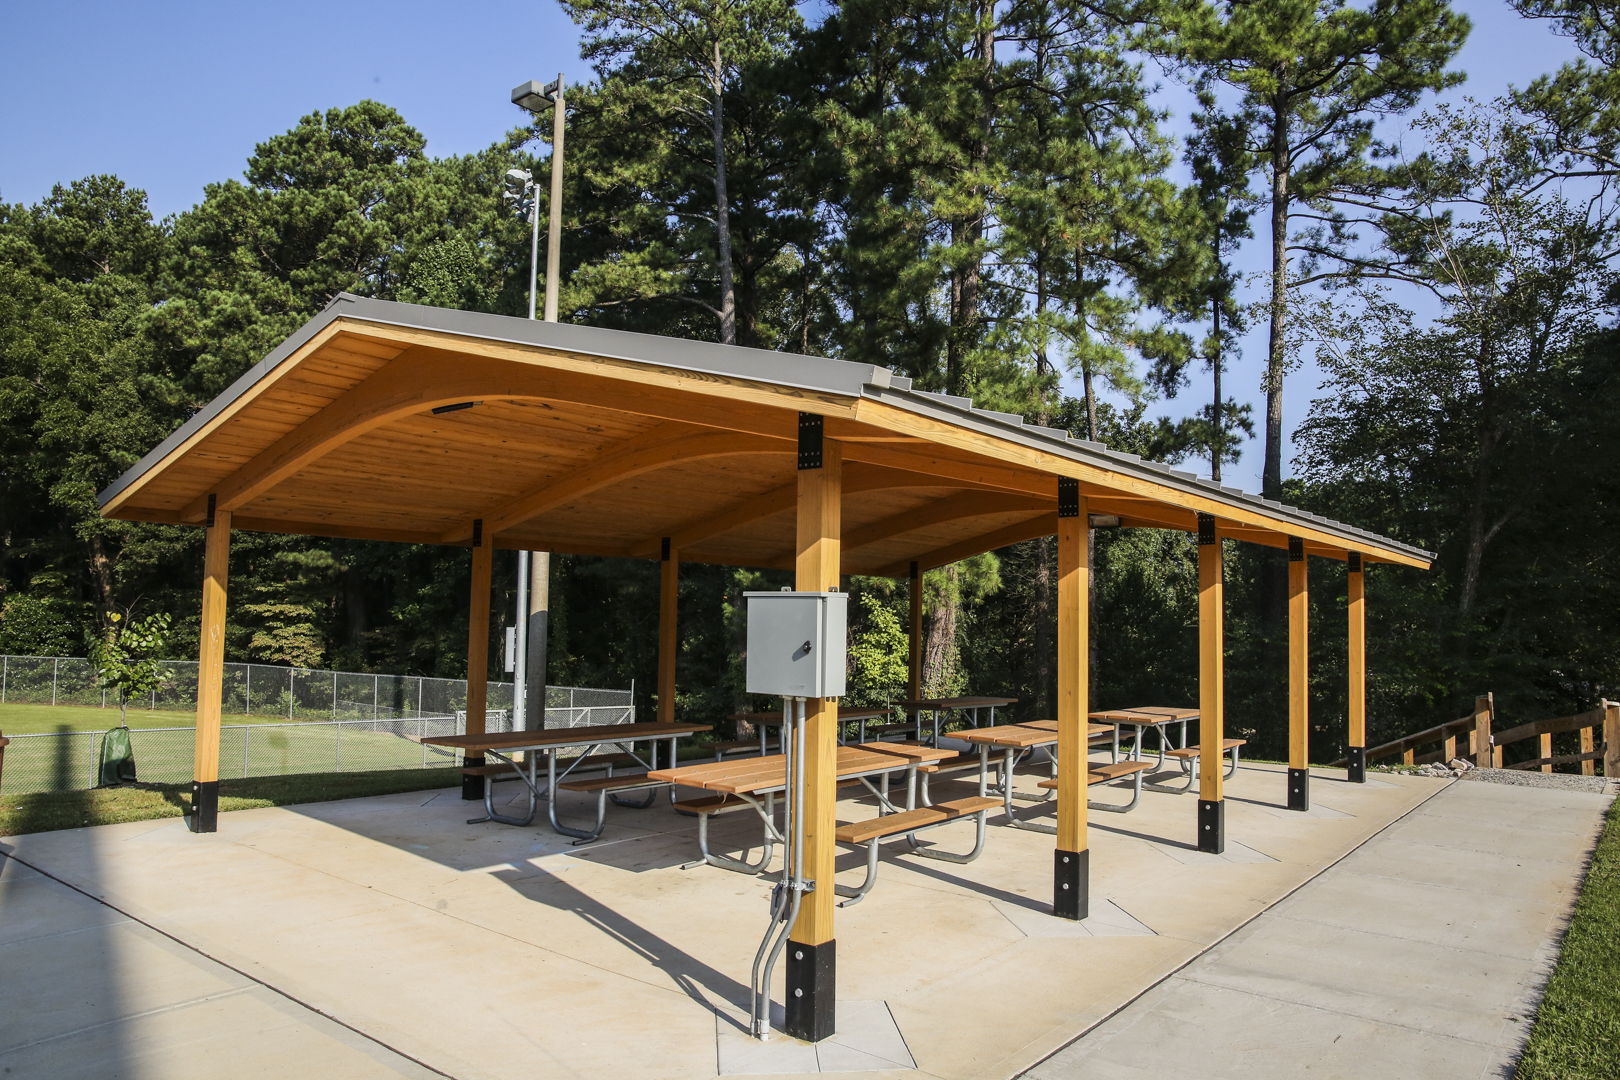 An outdoor covered picnic shelter with multiple tables